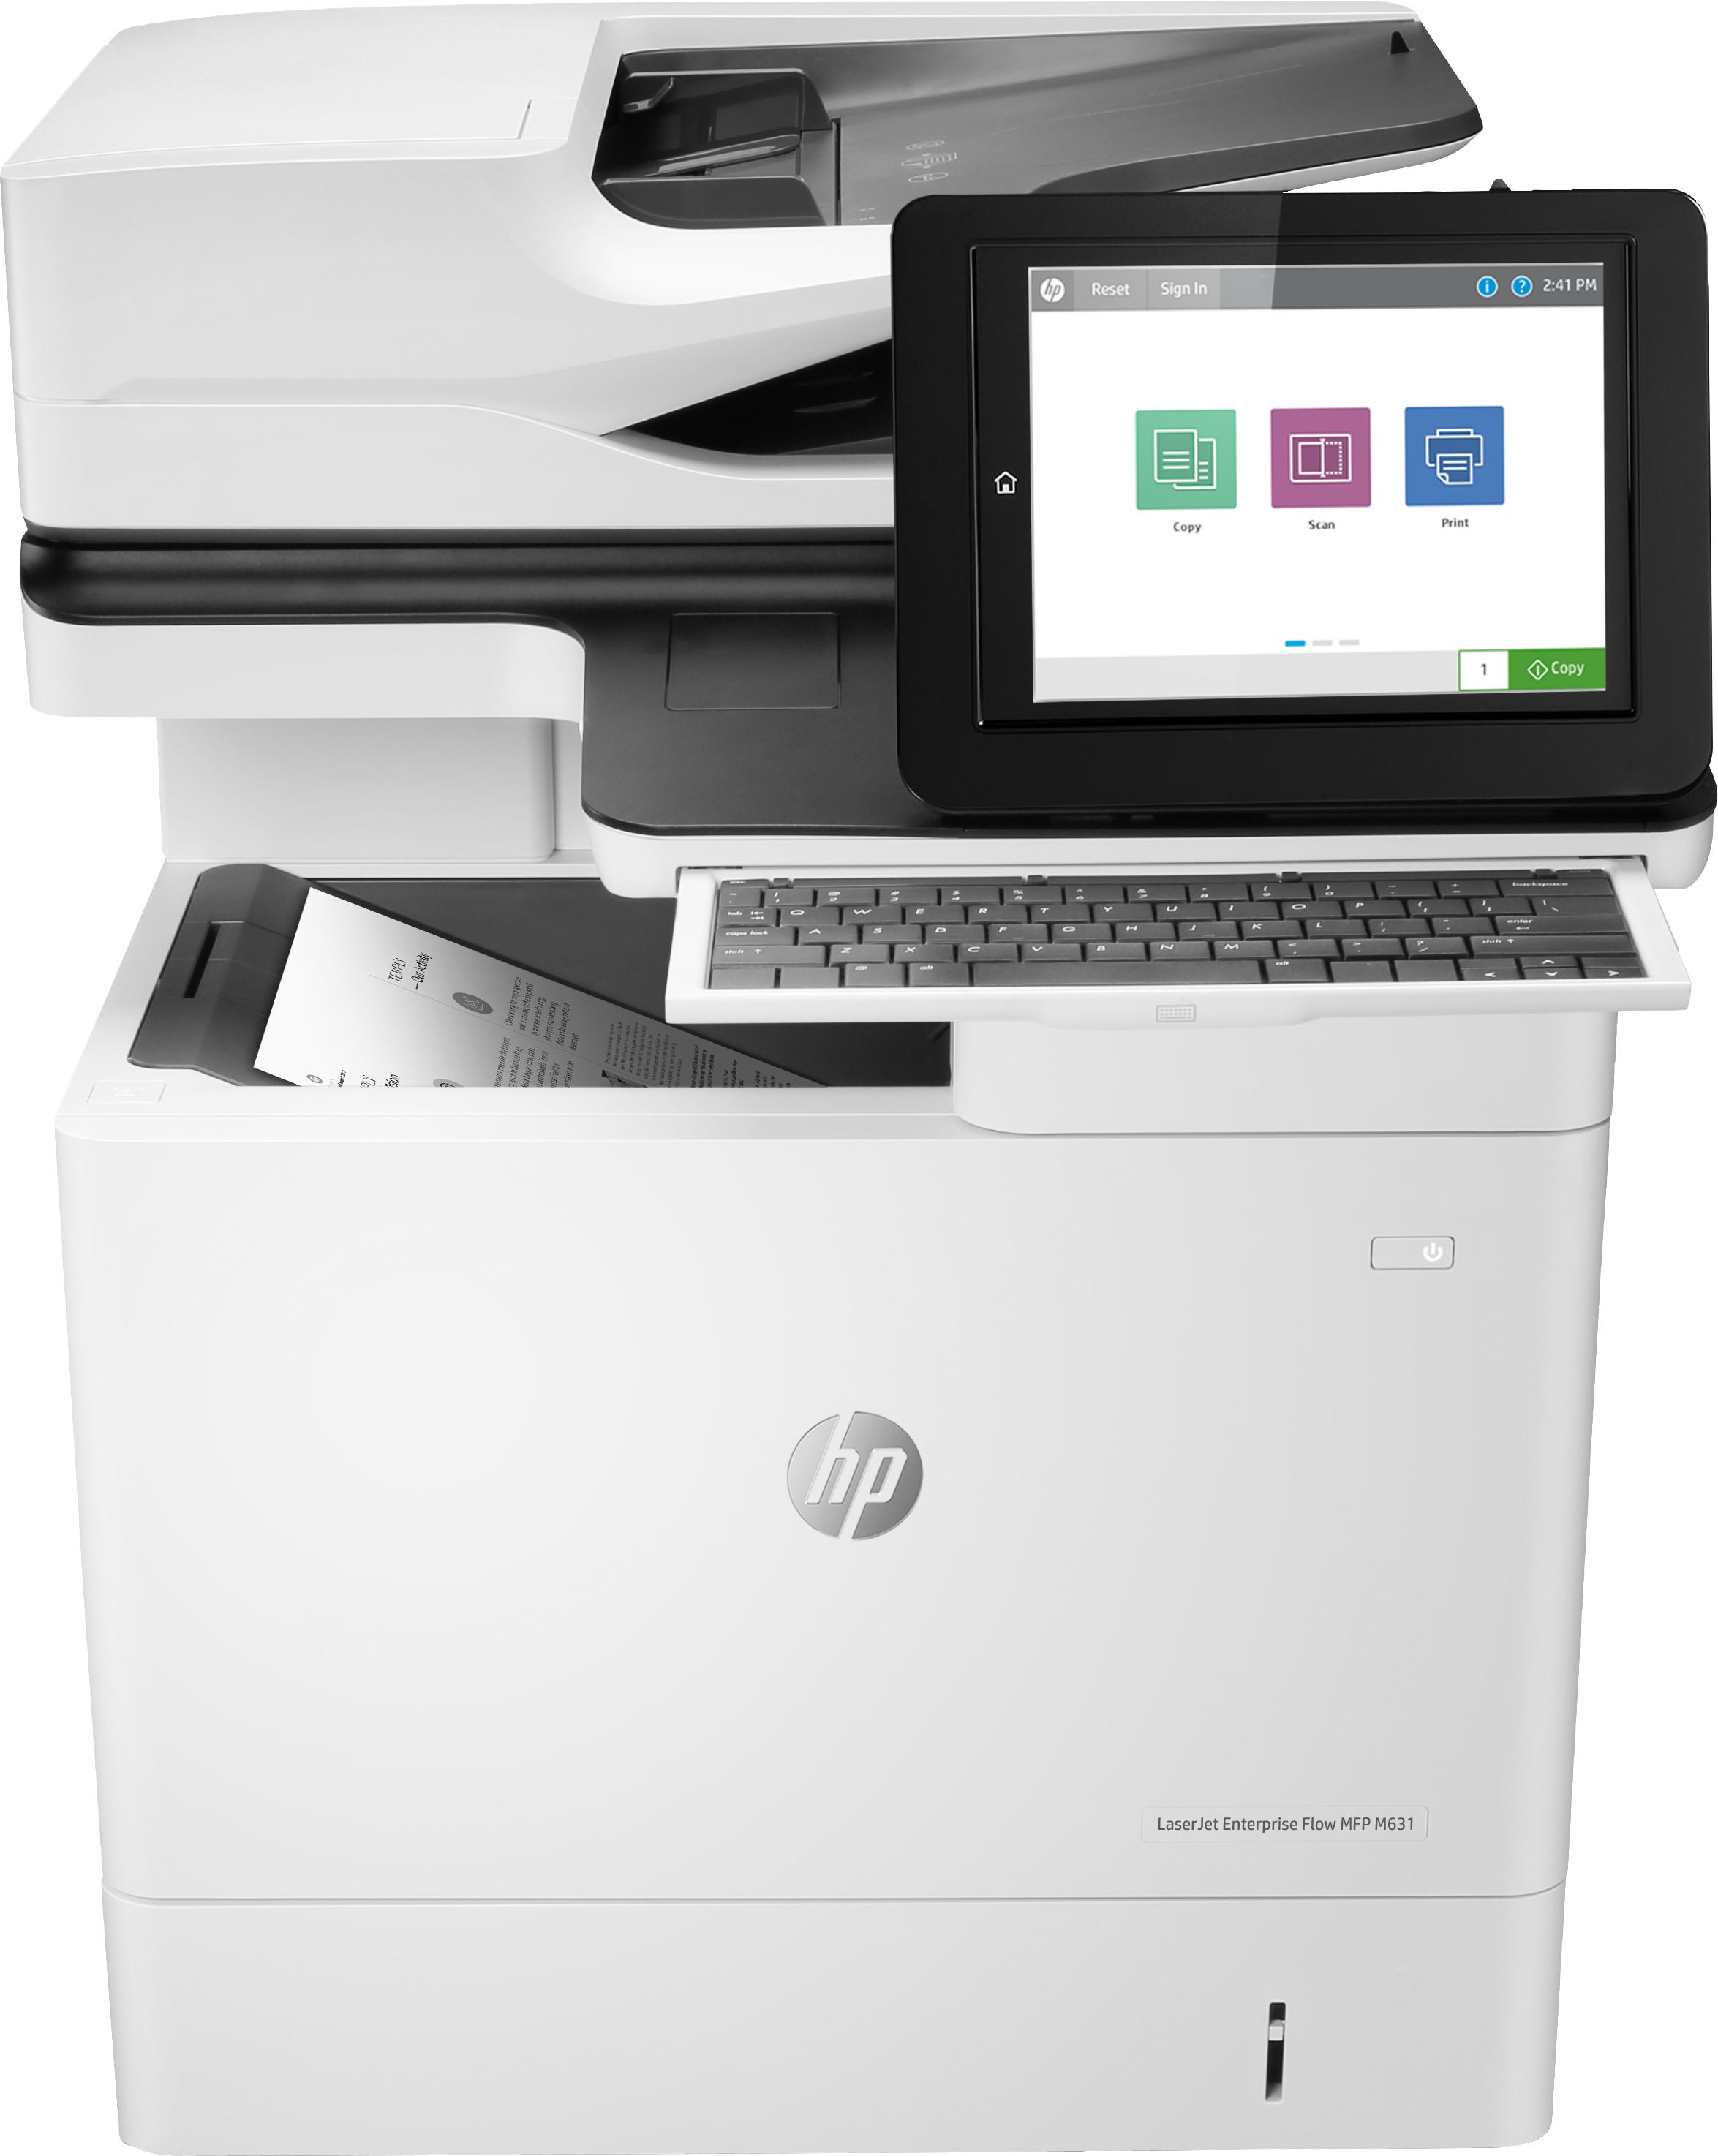 J8J64A HP LaserJet Enterprise Flow MFP M631h - Refurbished with 3 months RTB warranty